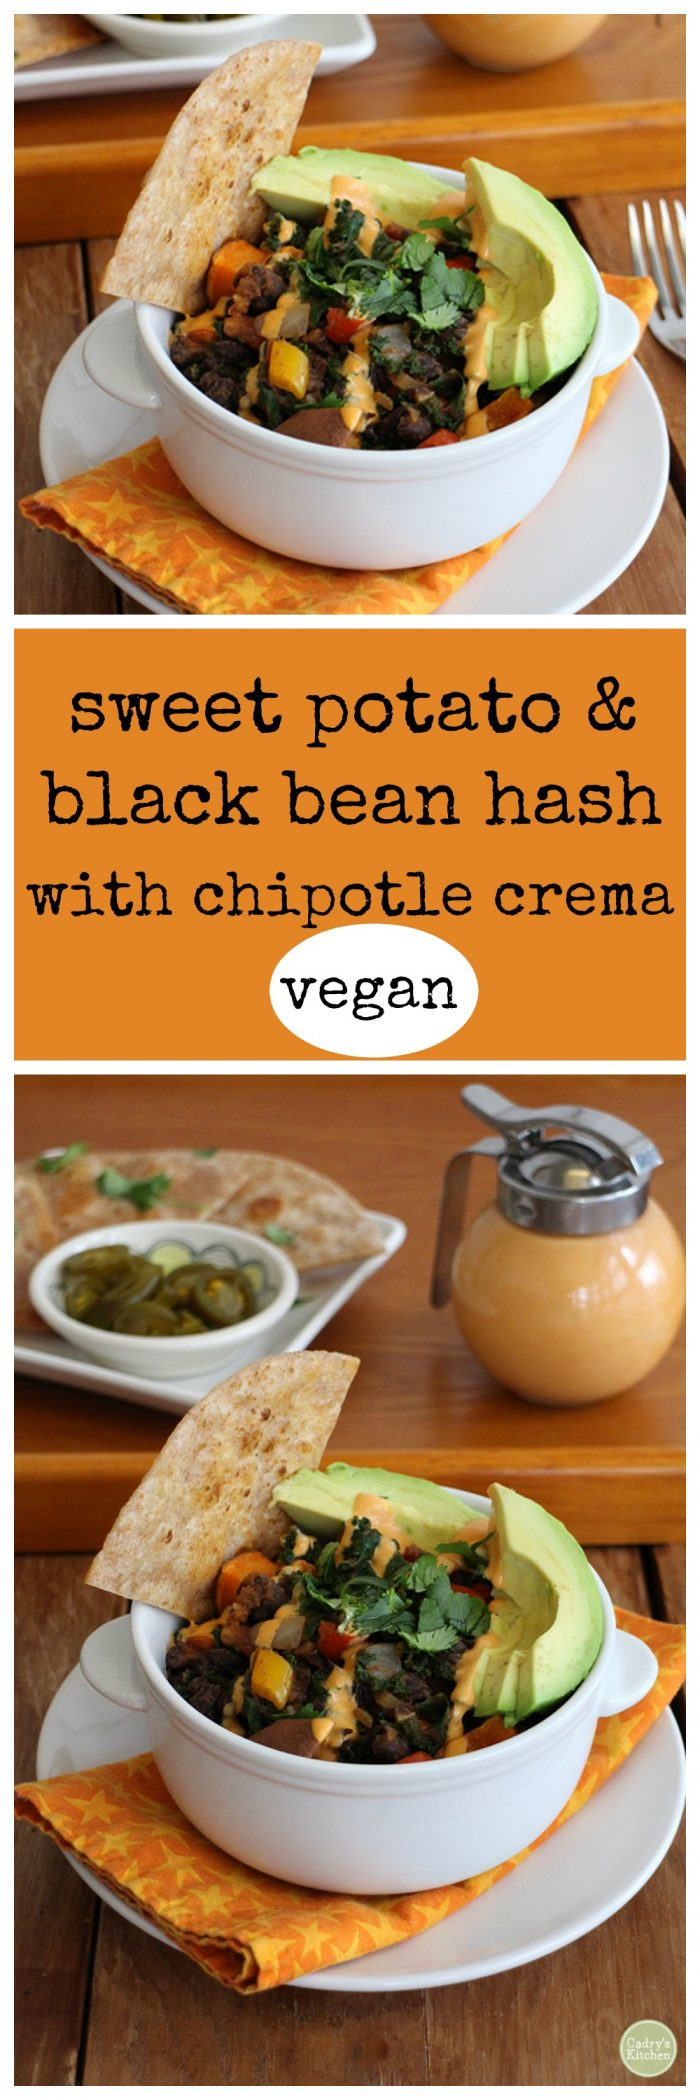 Sweet potato & black bean hash with chipotle crema - vegan | cadryskitchen.com